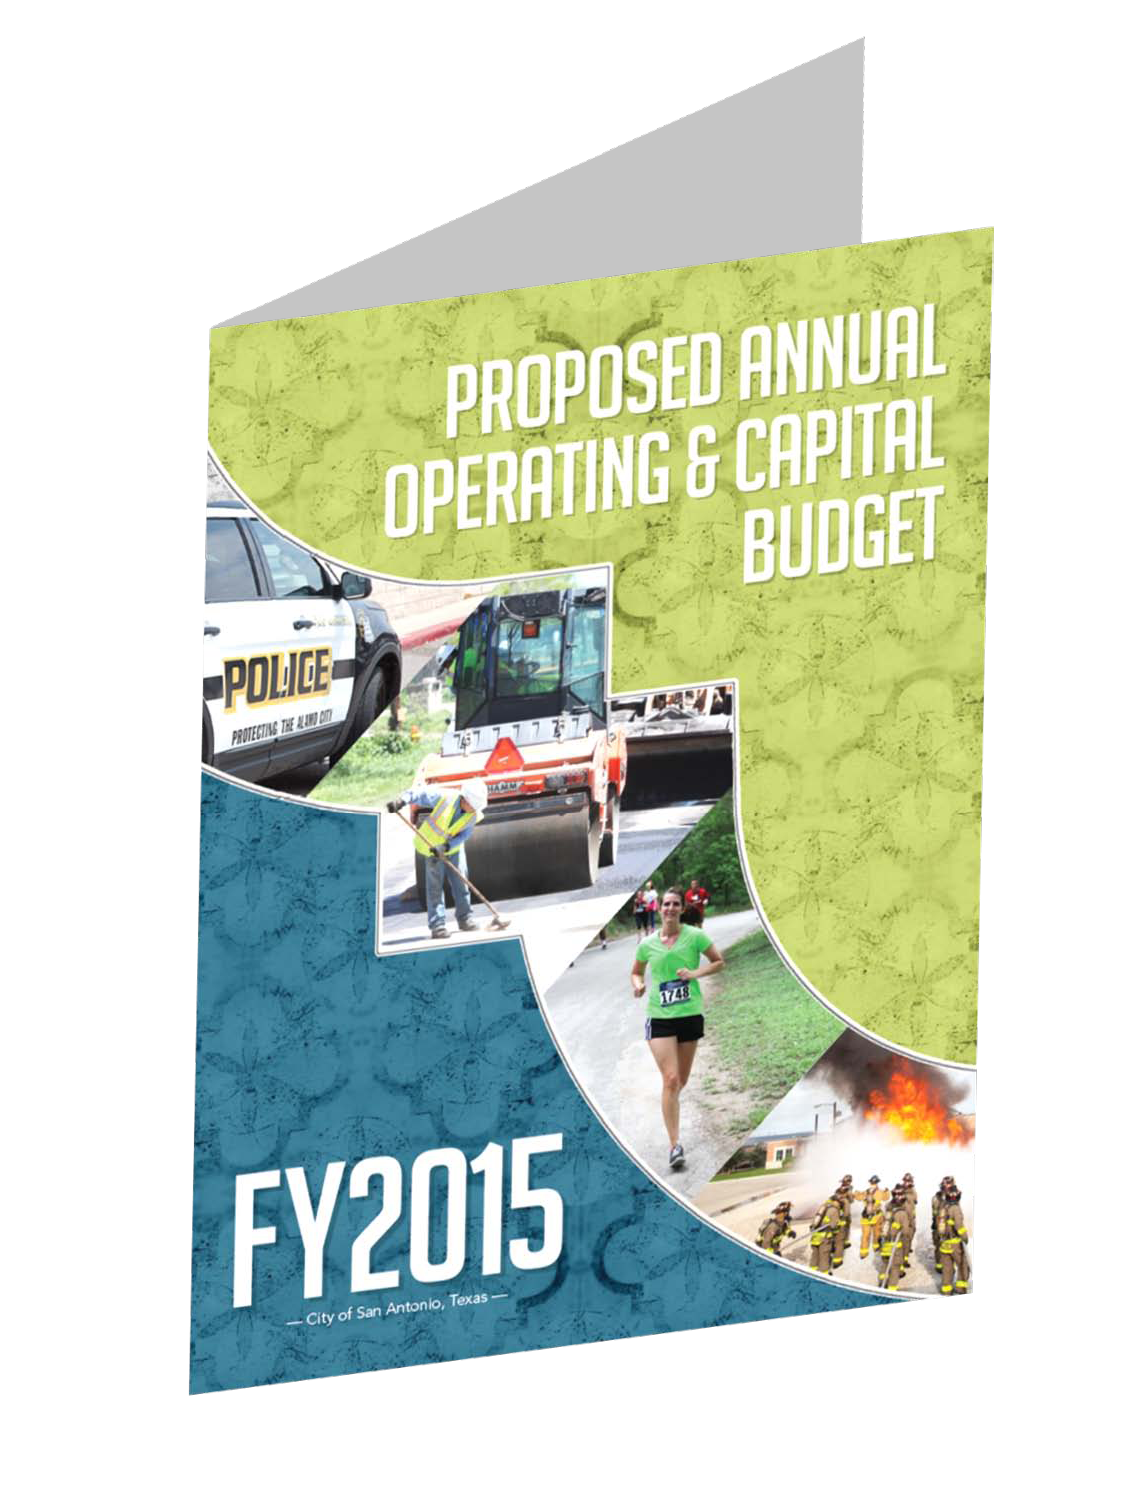 FY 2015 Budget Highlights